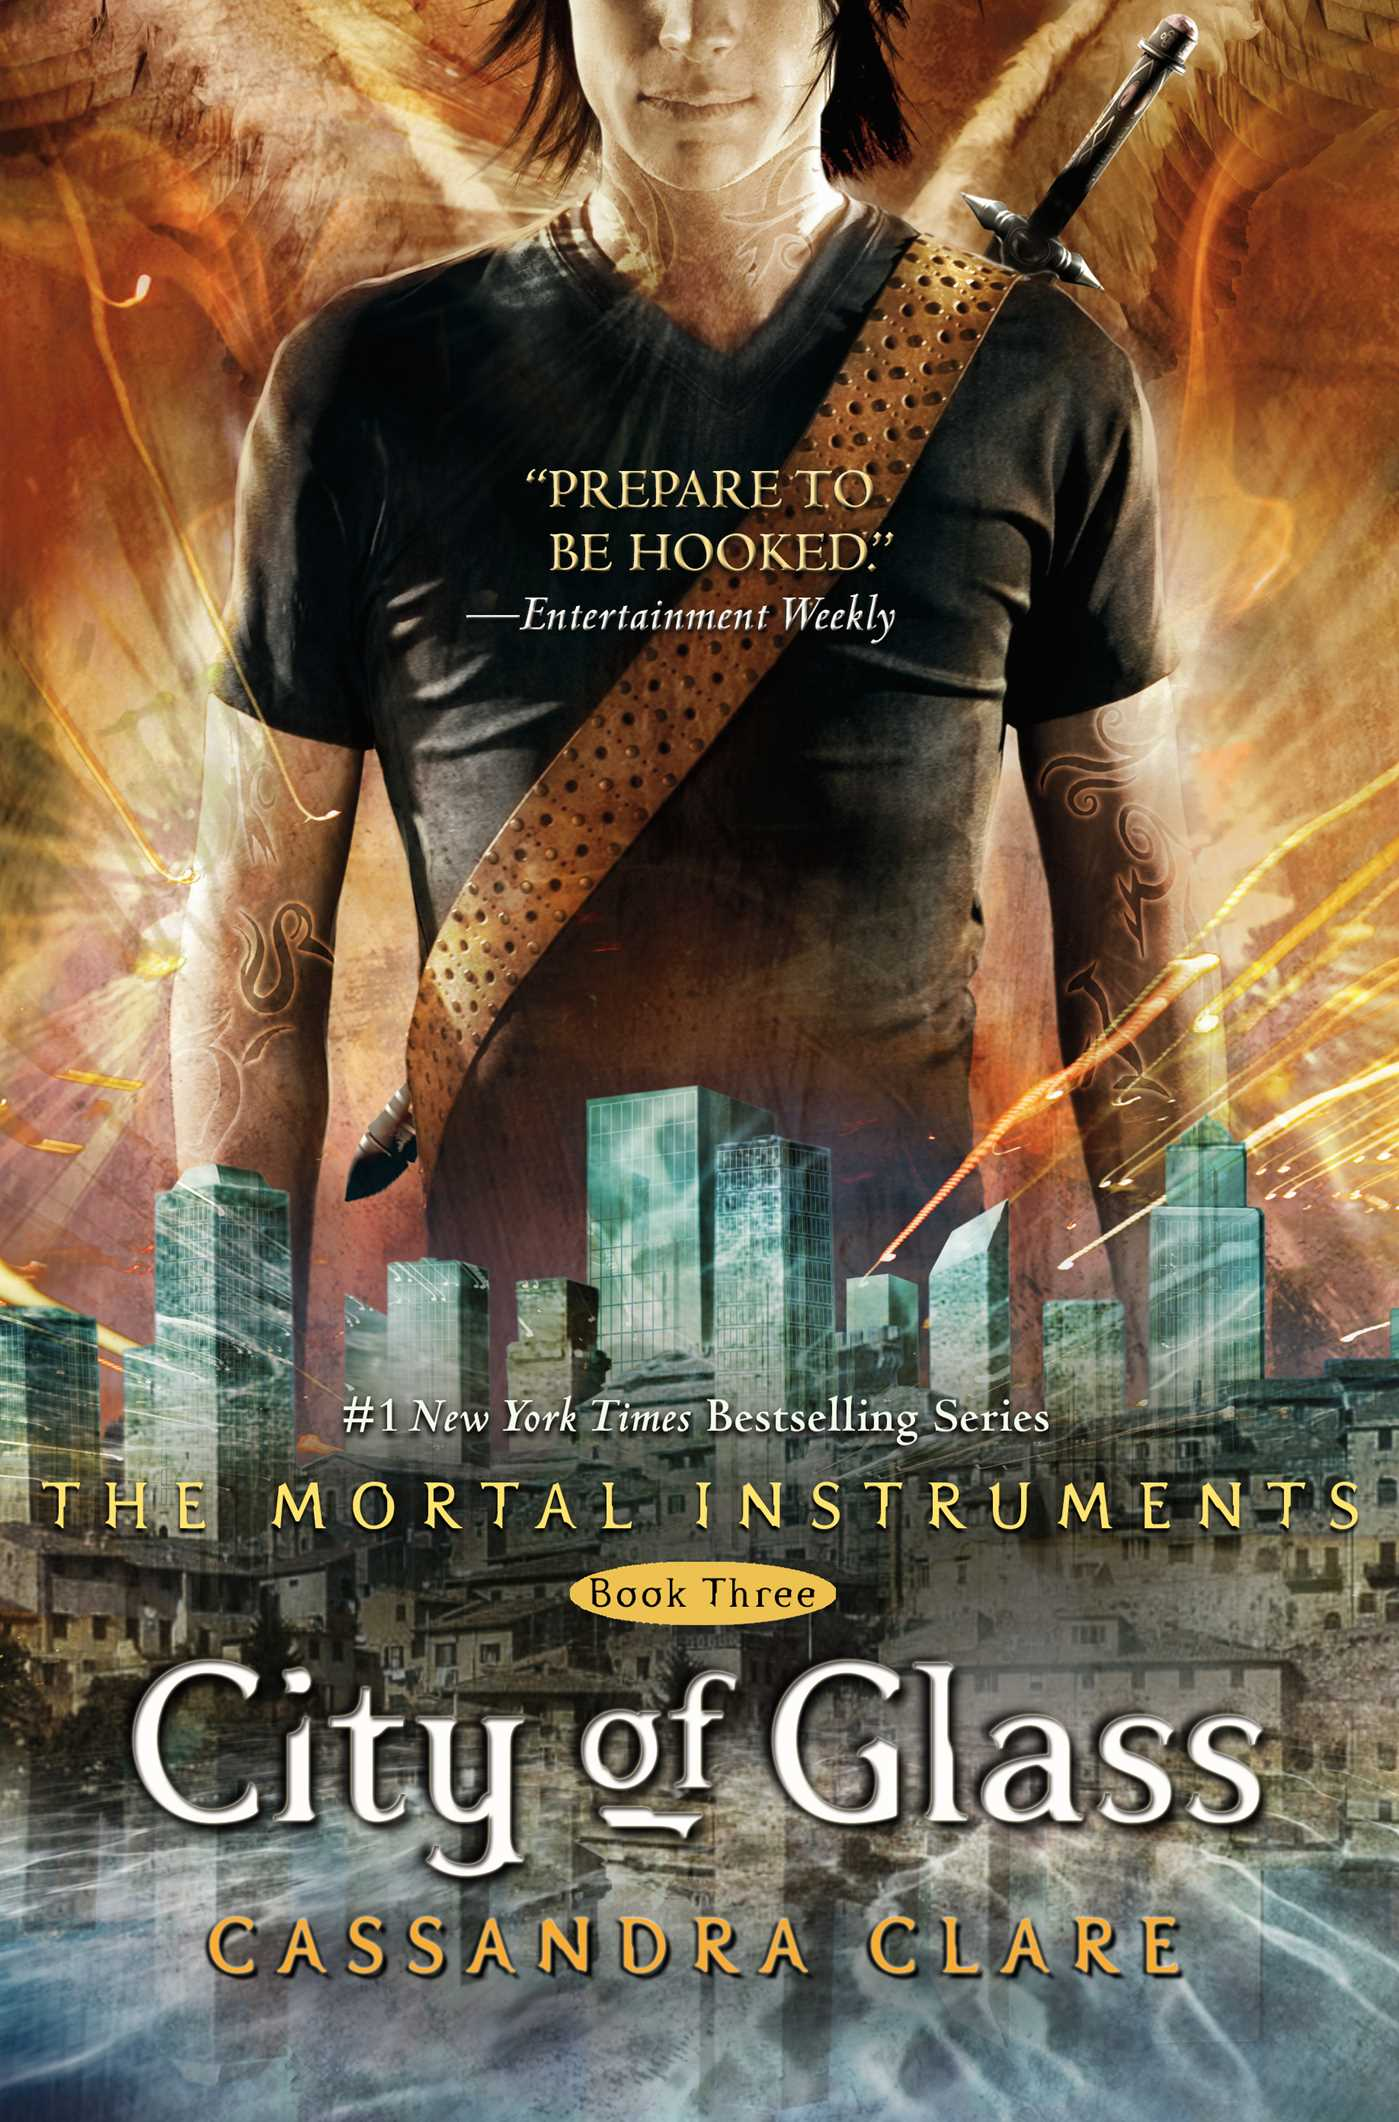 City-of-glass-9781416914303_hr